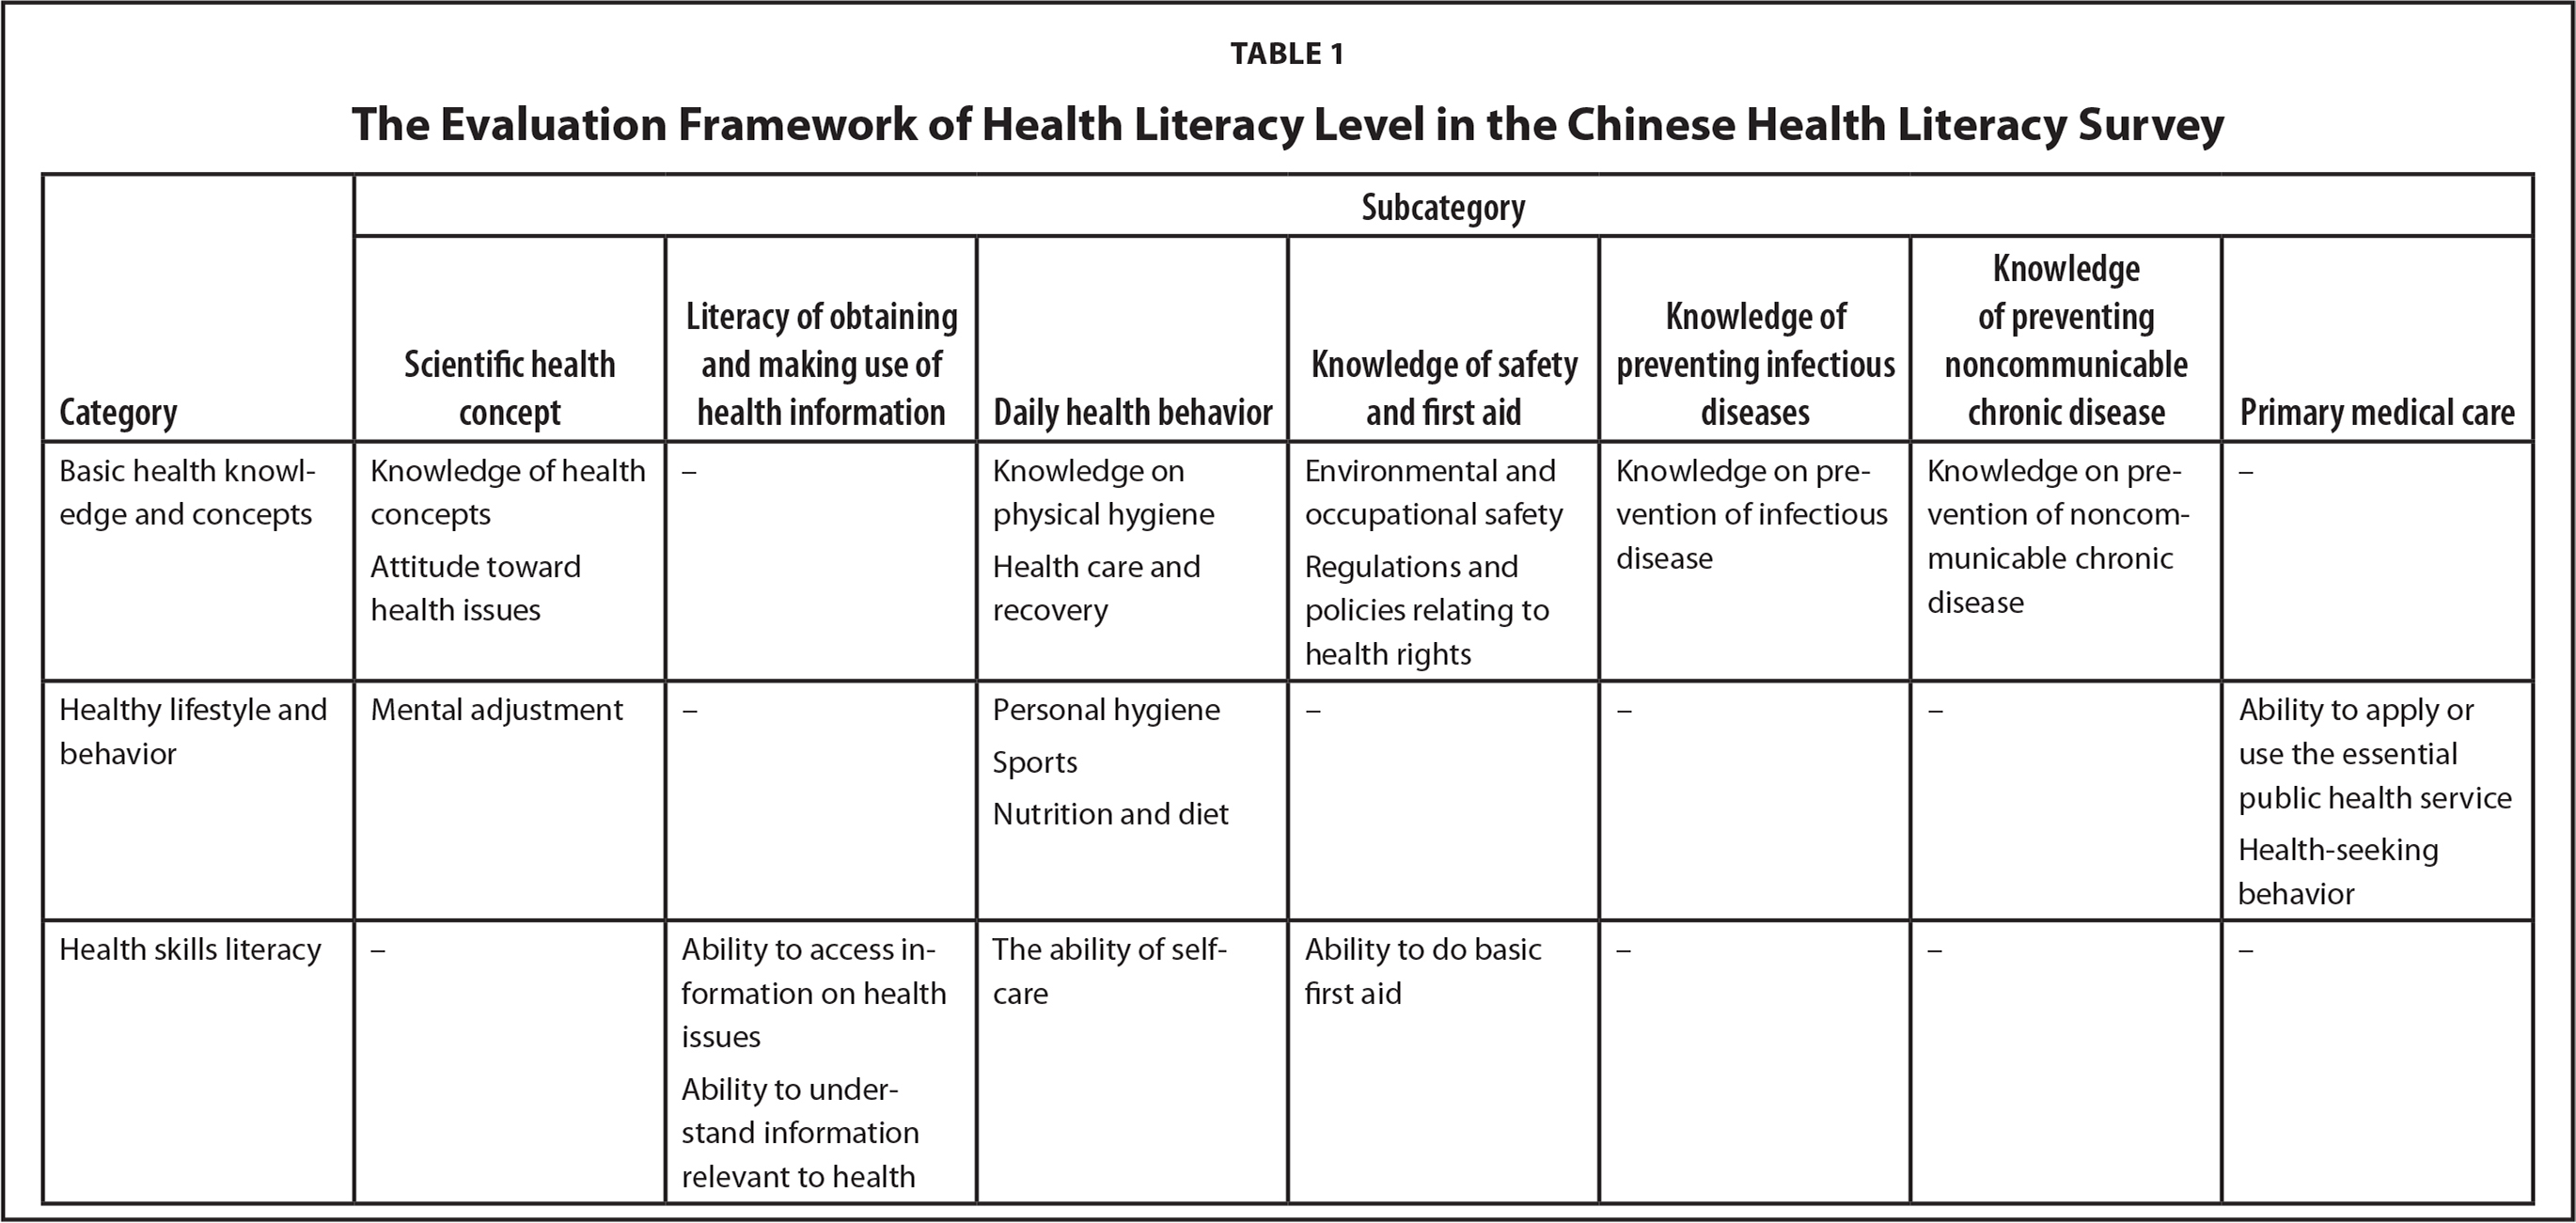 The Evaluation Framework of Health Literacy Level in the Chinese Health Literacy Survey